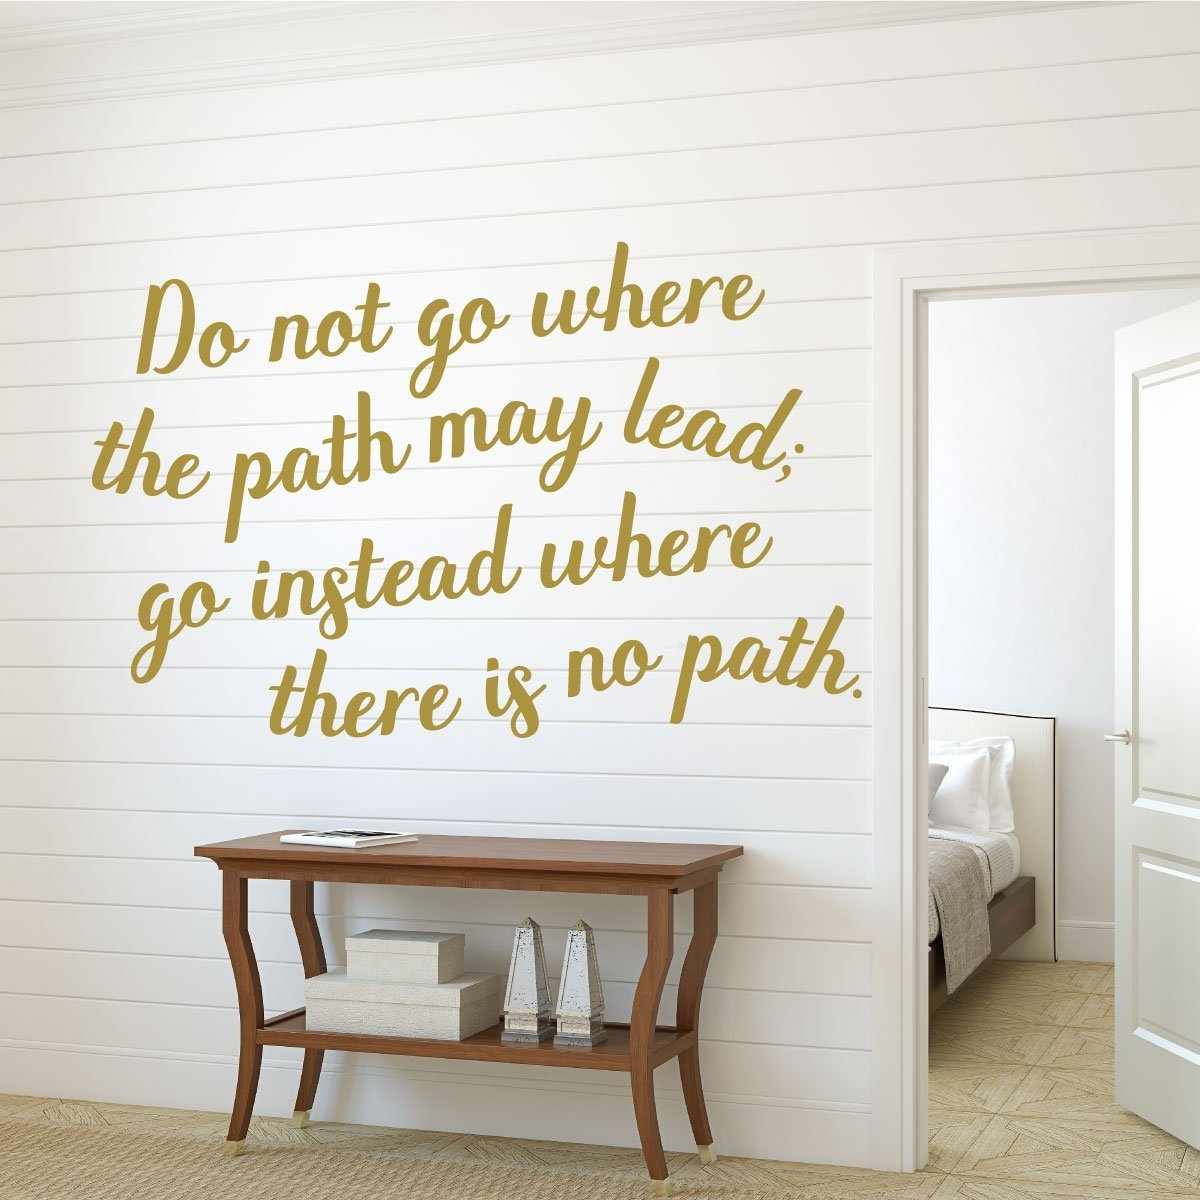 Adventure Wall Decal -Do Not Go Where the Path May Lead You Instead Where There Is No Path